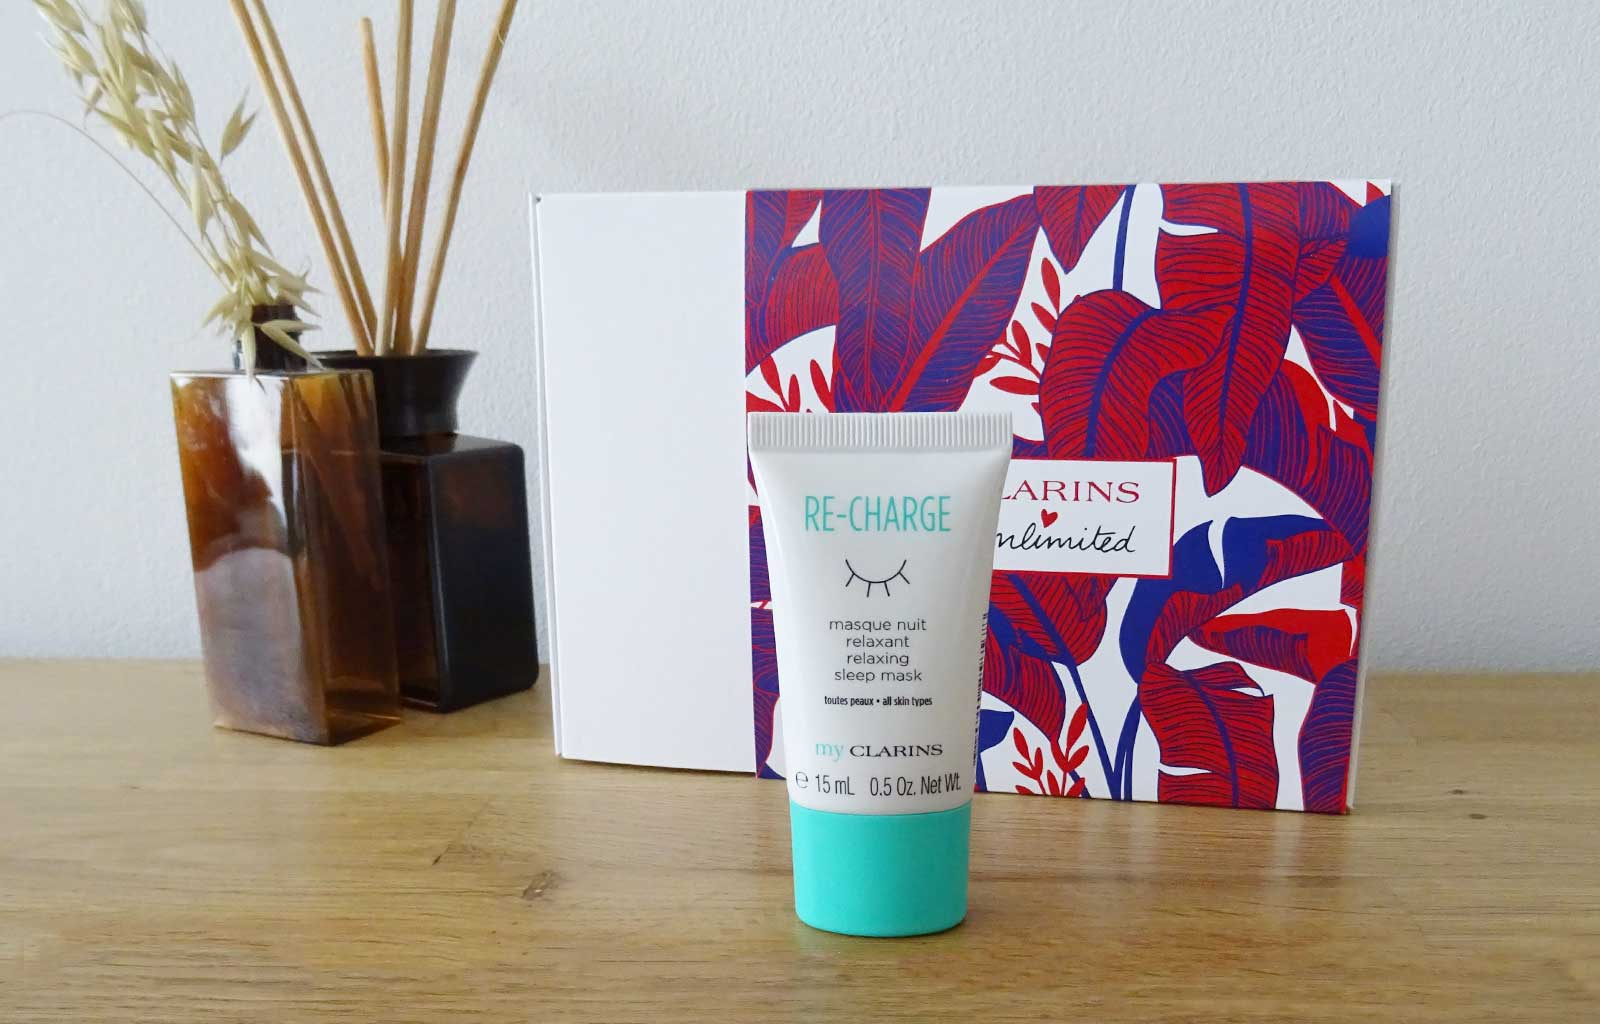 Clarins unlimited my clarins re-charge masque nuit